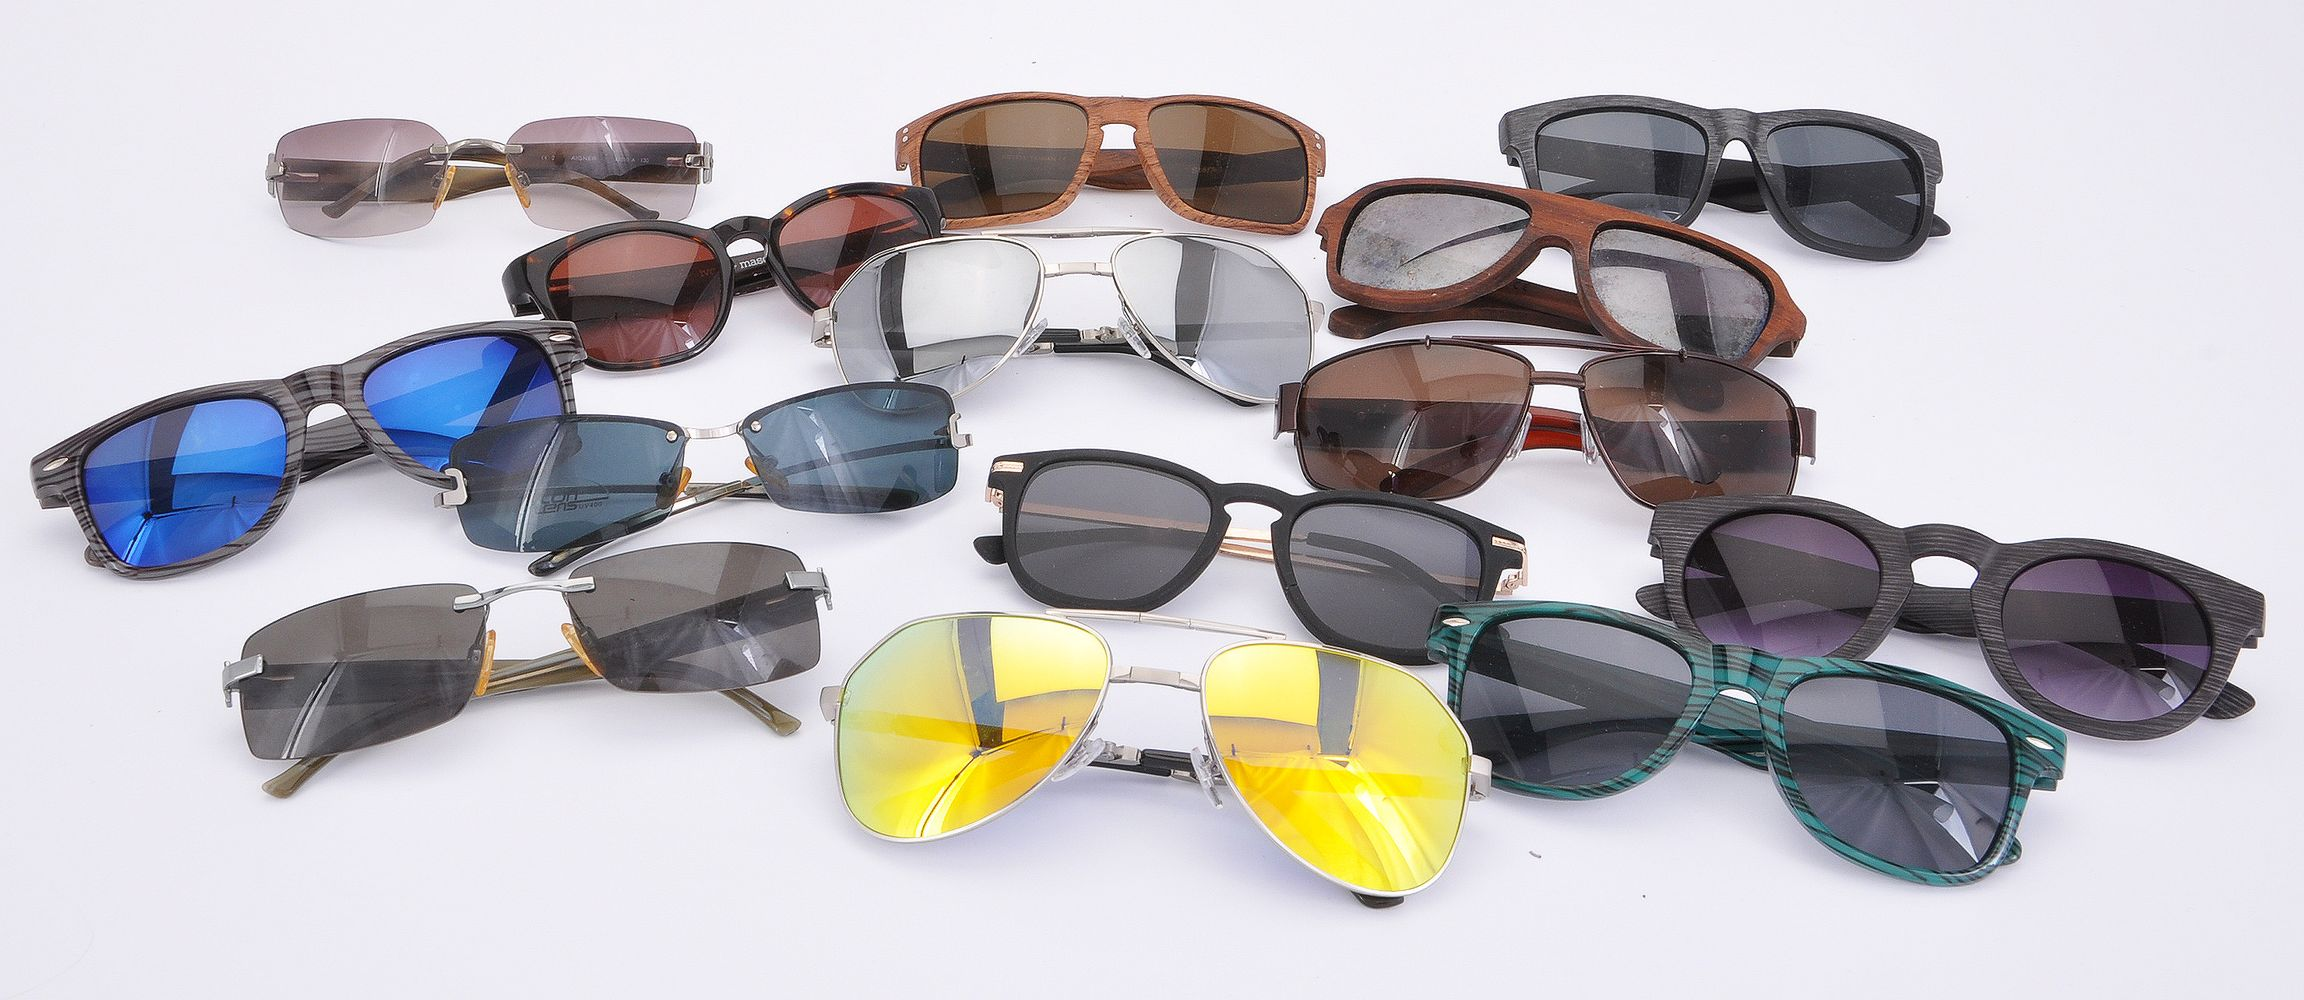 Lot 1089 - A collection of unbranded sunglasses